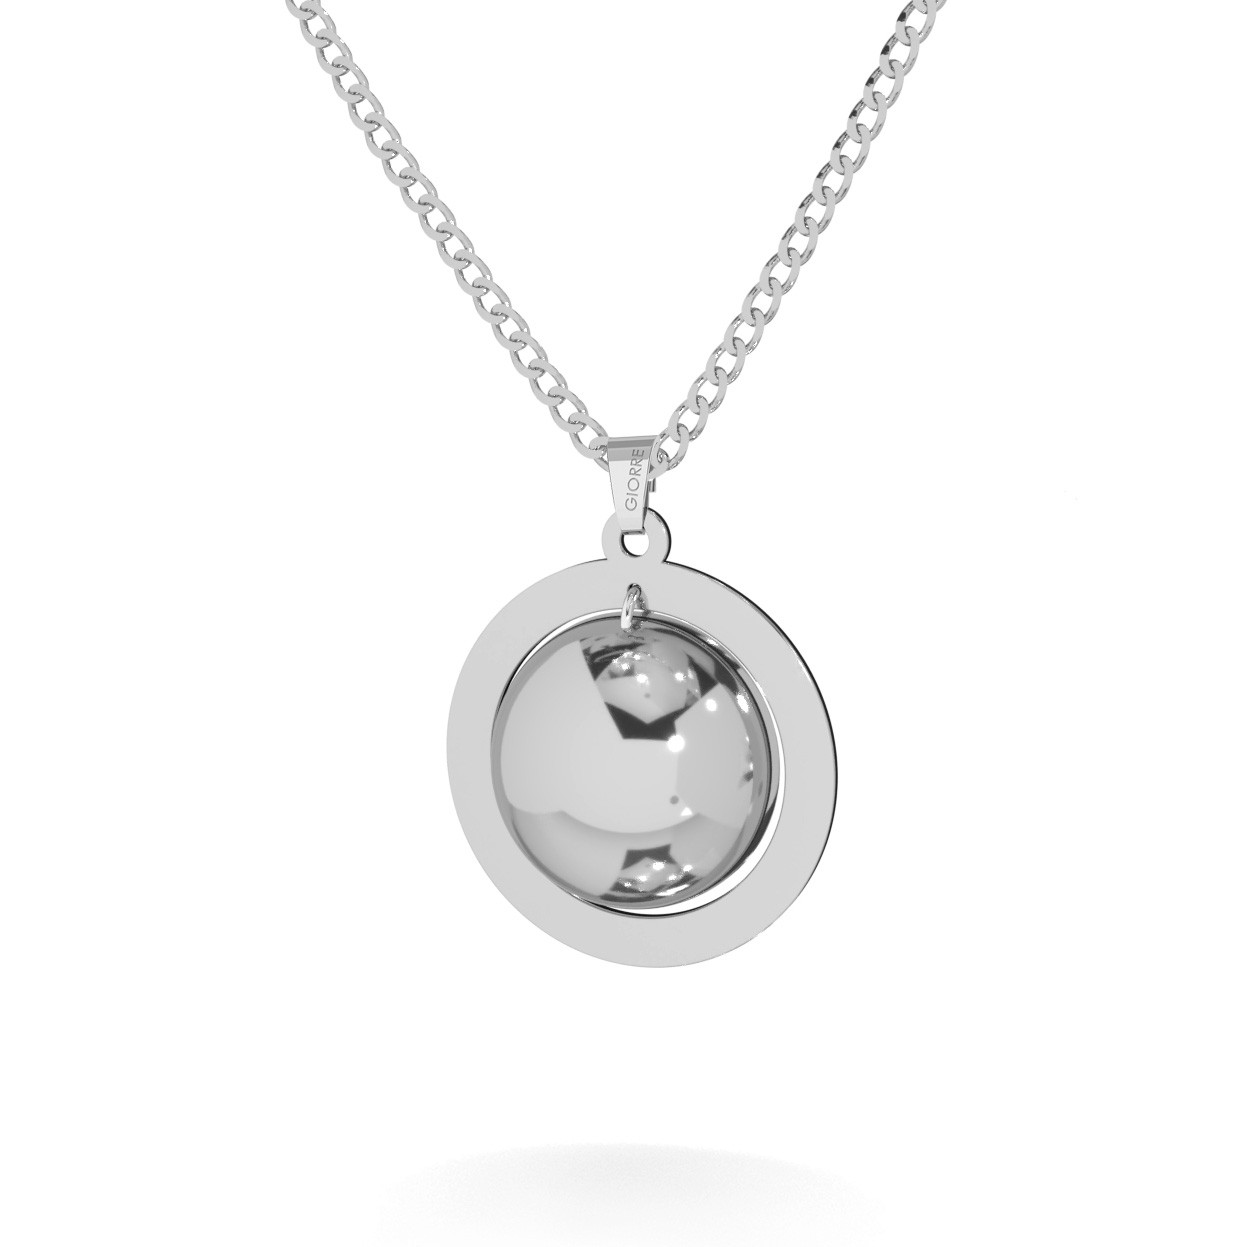 Round necklace with Your letter sterling silver 925